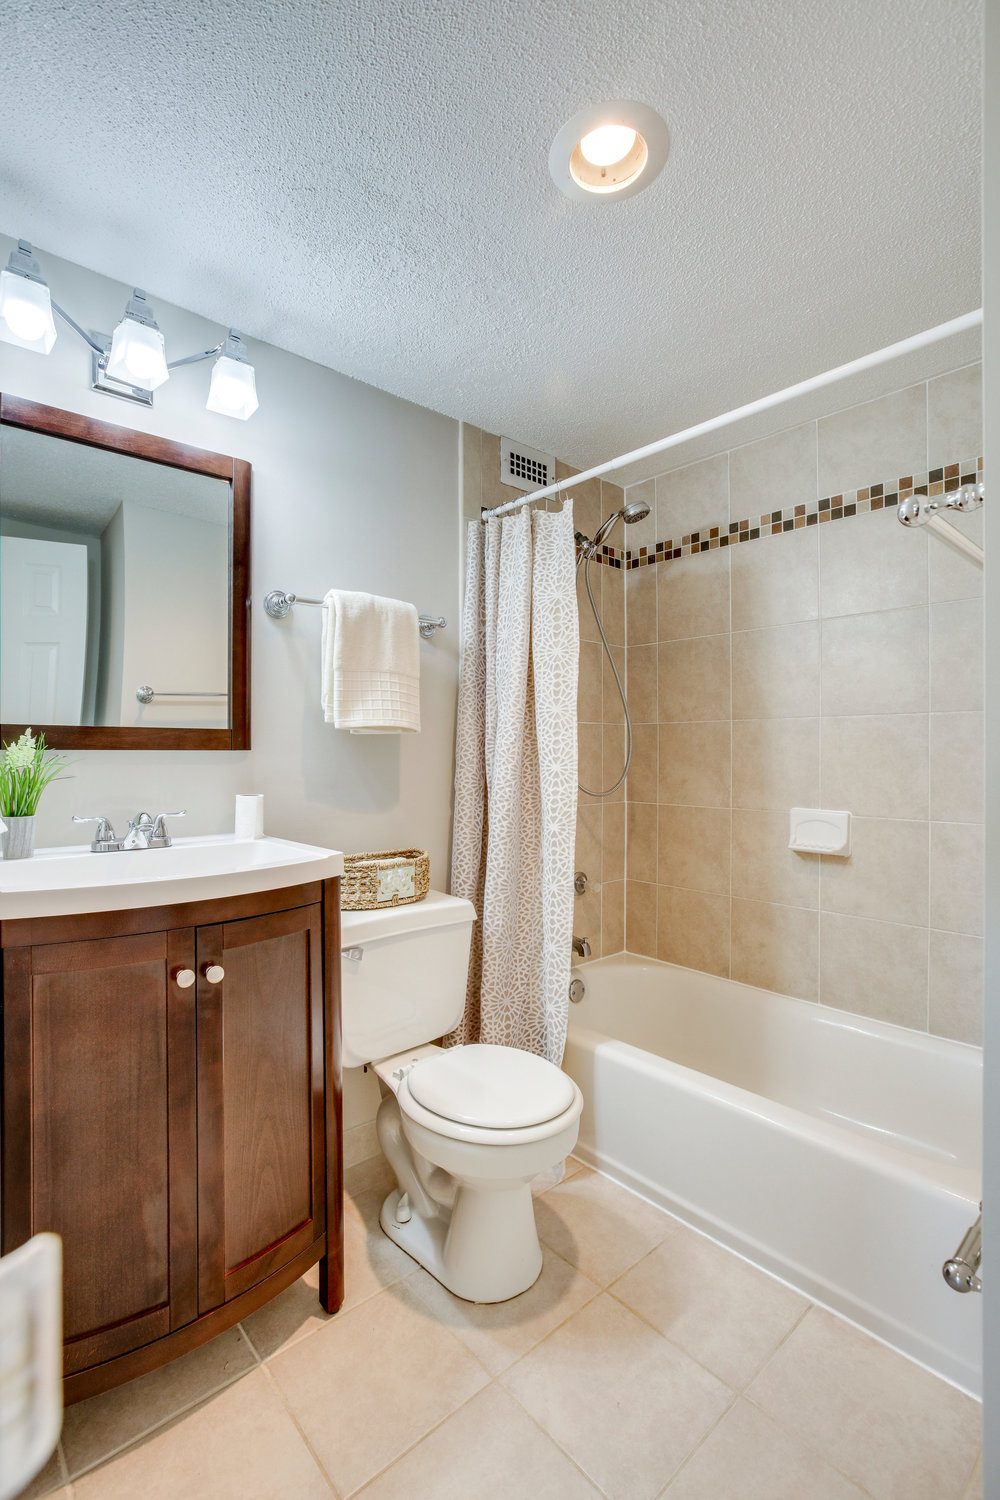 2030 N Adams St 1002 Arlington-print-033-71-Bathroom-2800x4200-300dpi.jpg